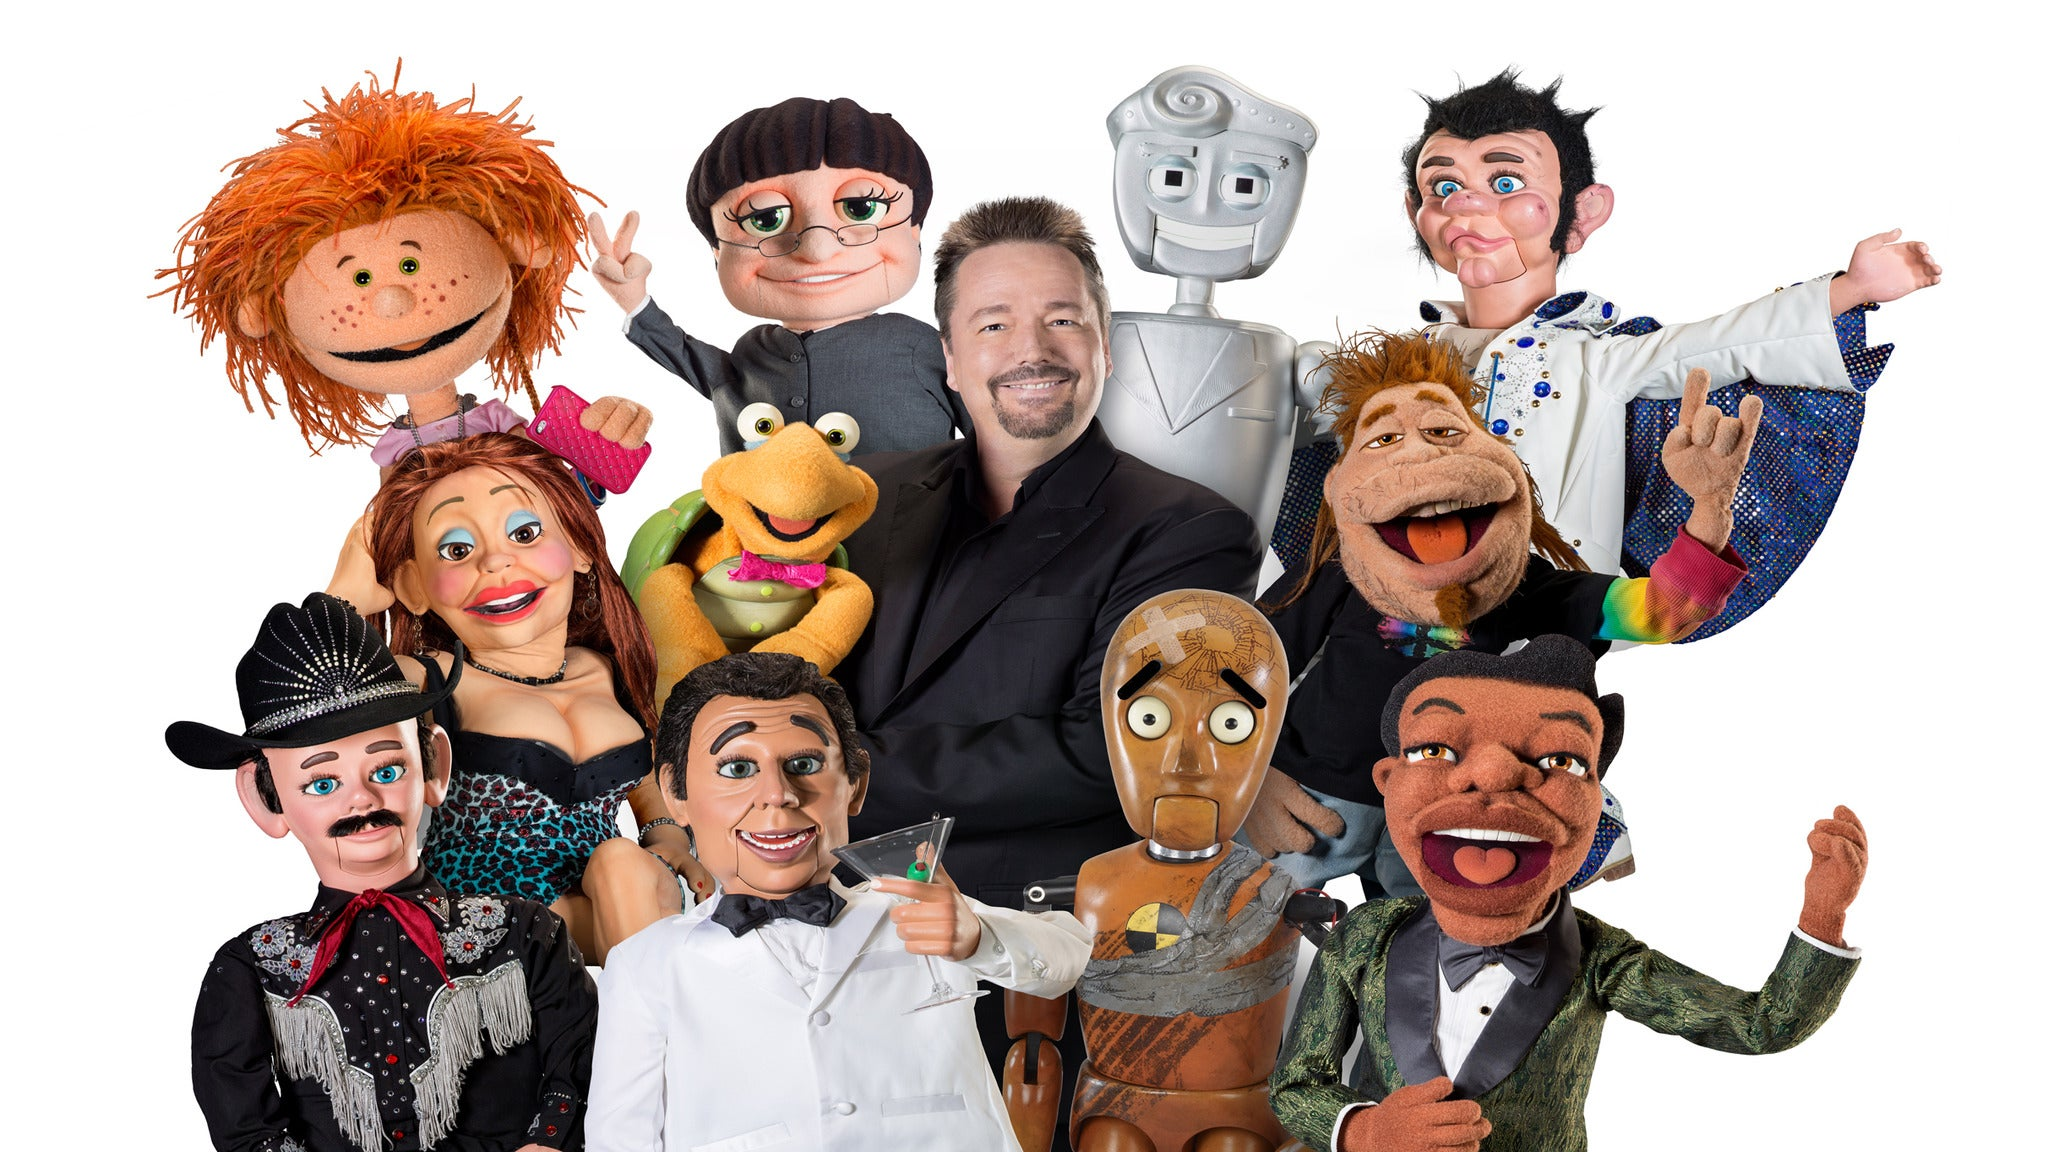 Terry Fator at Pechanga Resort and Casino